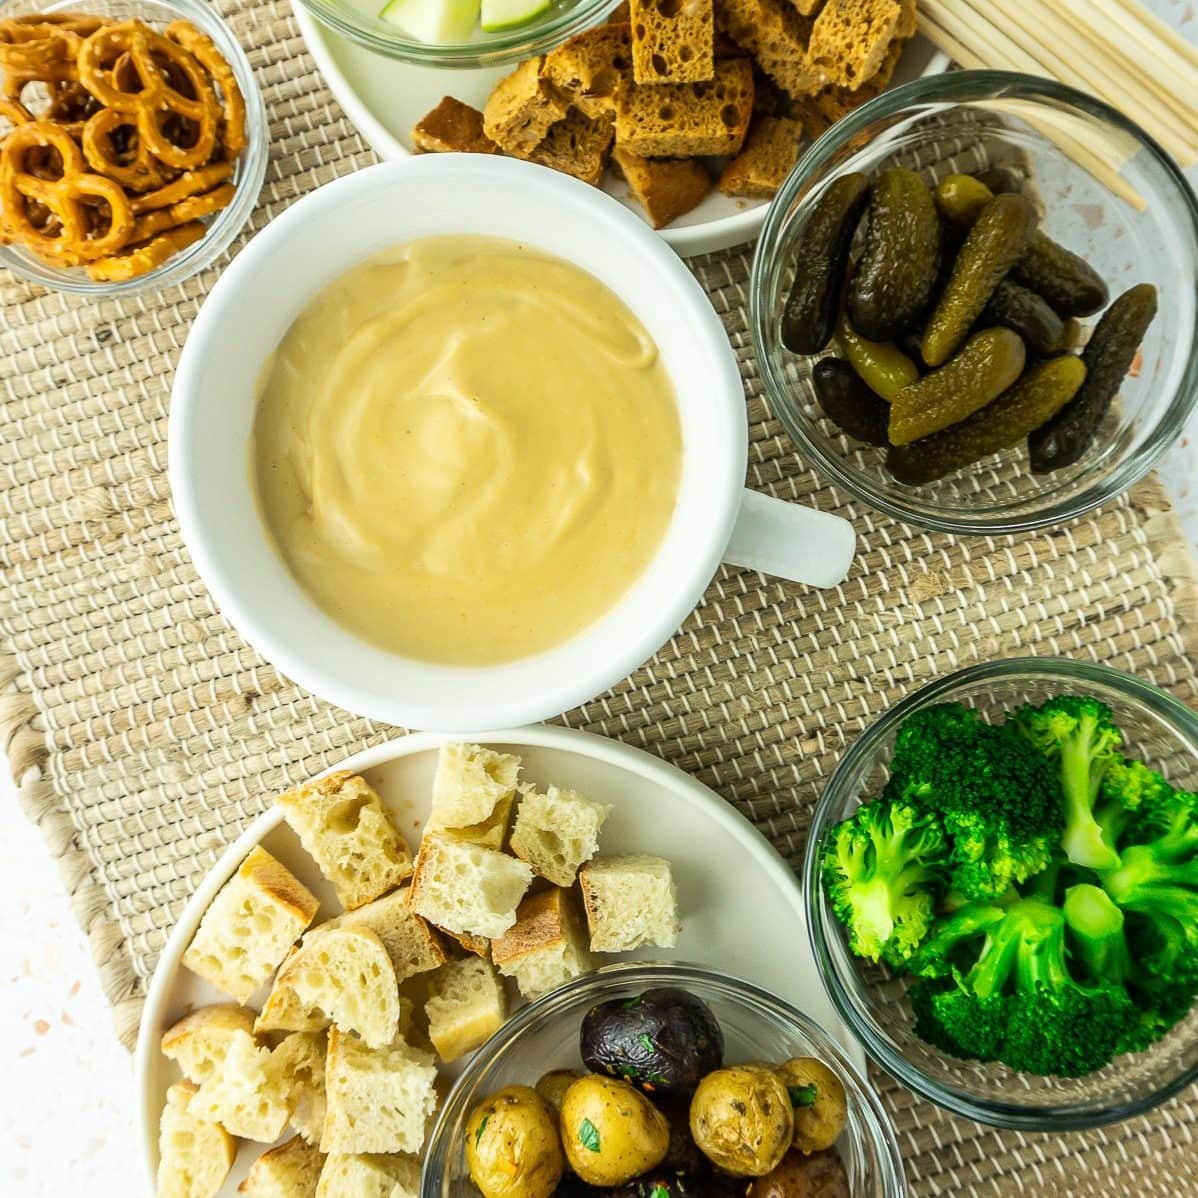 Vegan Cheese Fondue and Accompaniments